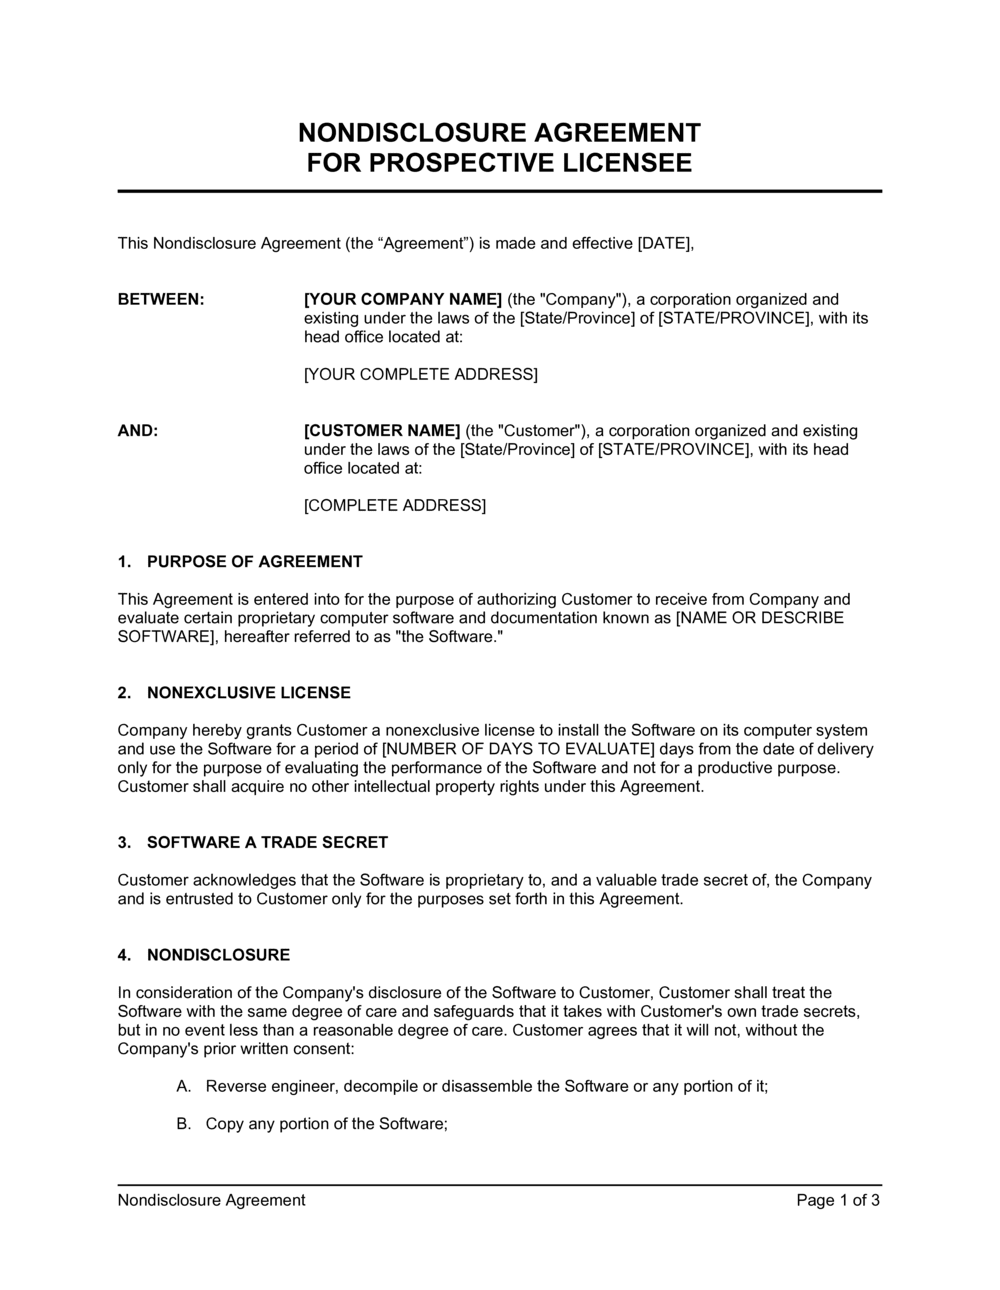 Business-in-a-Box's Non-Disclosure Agreement Prospective Licensee Template